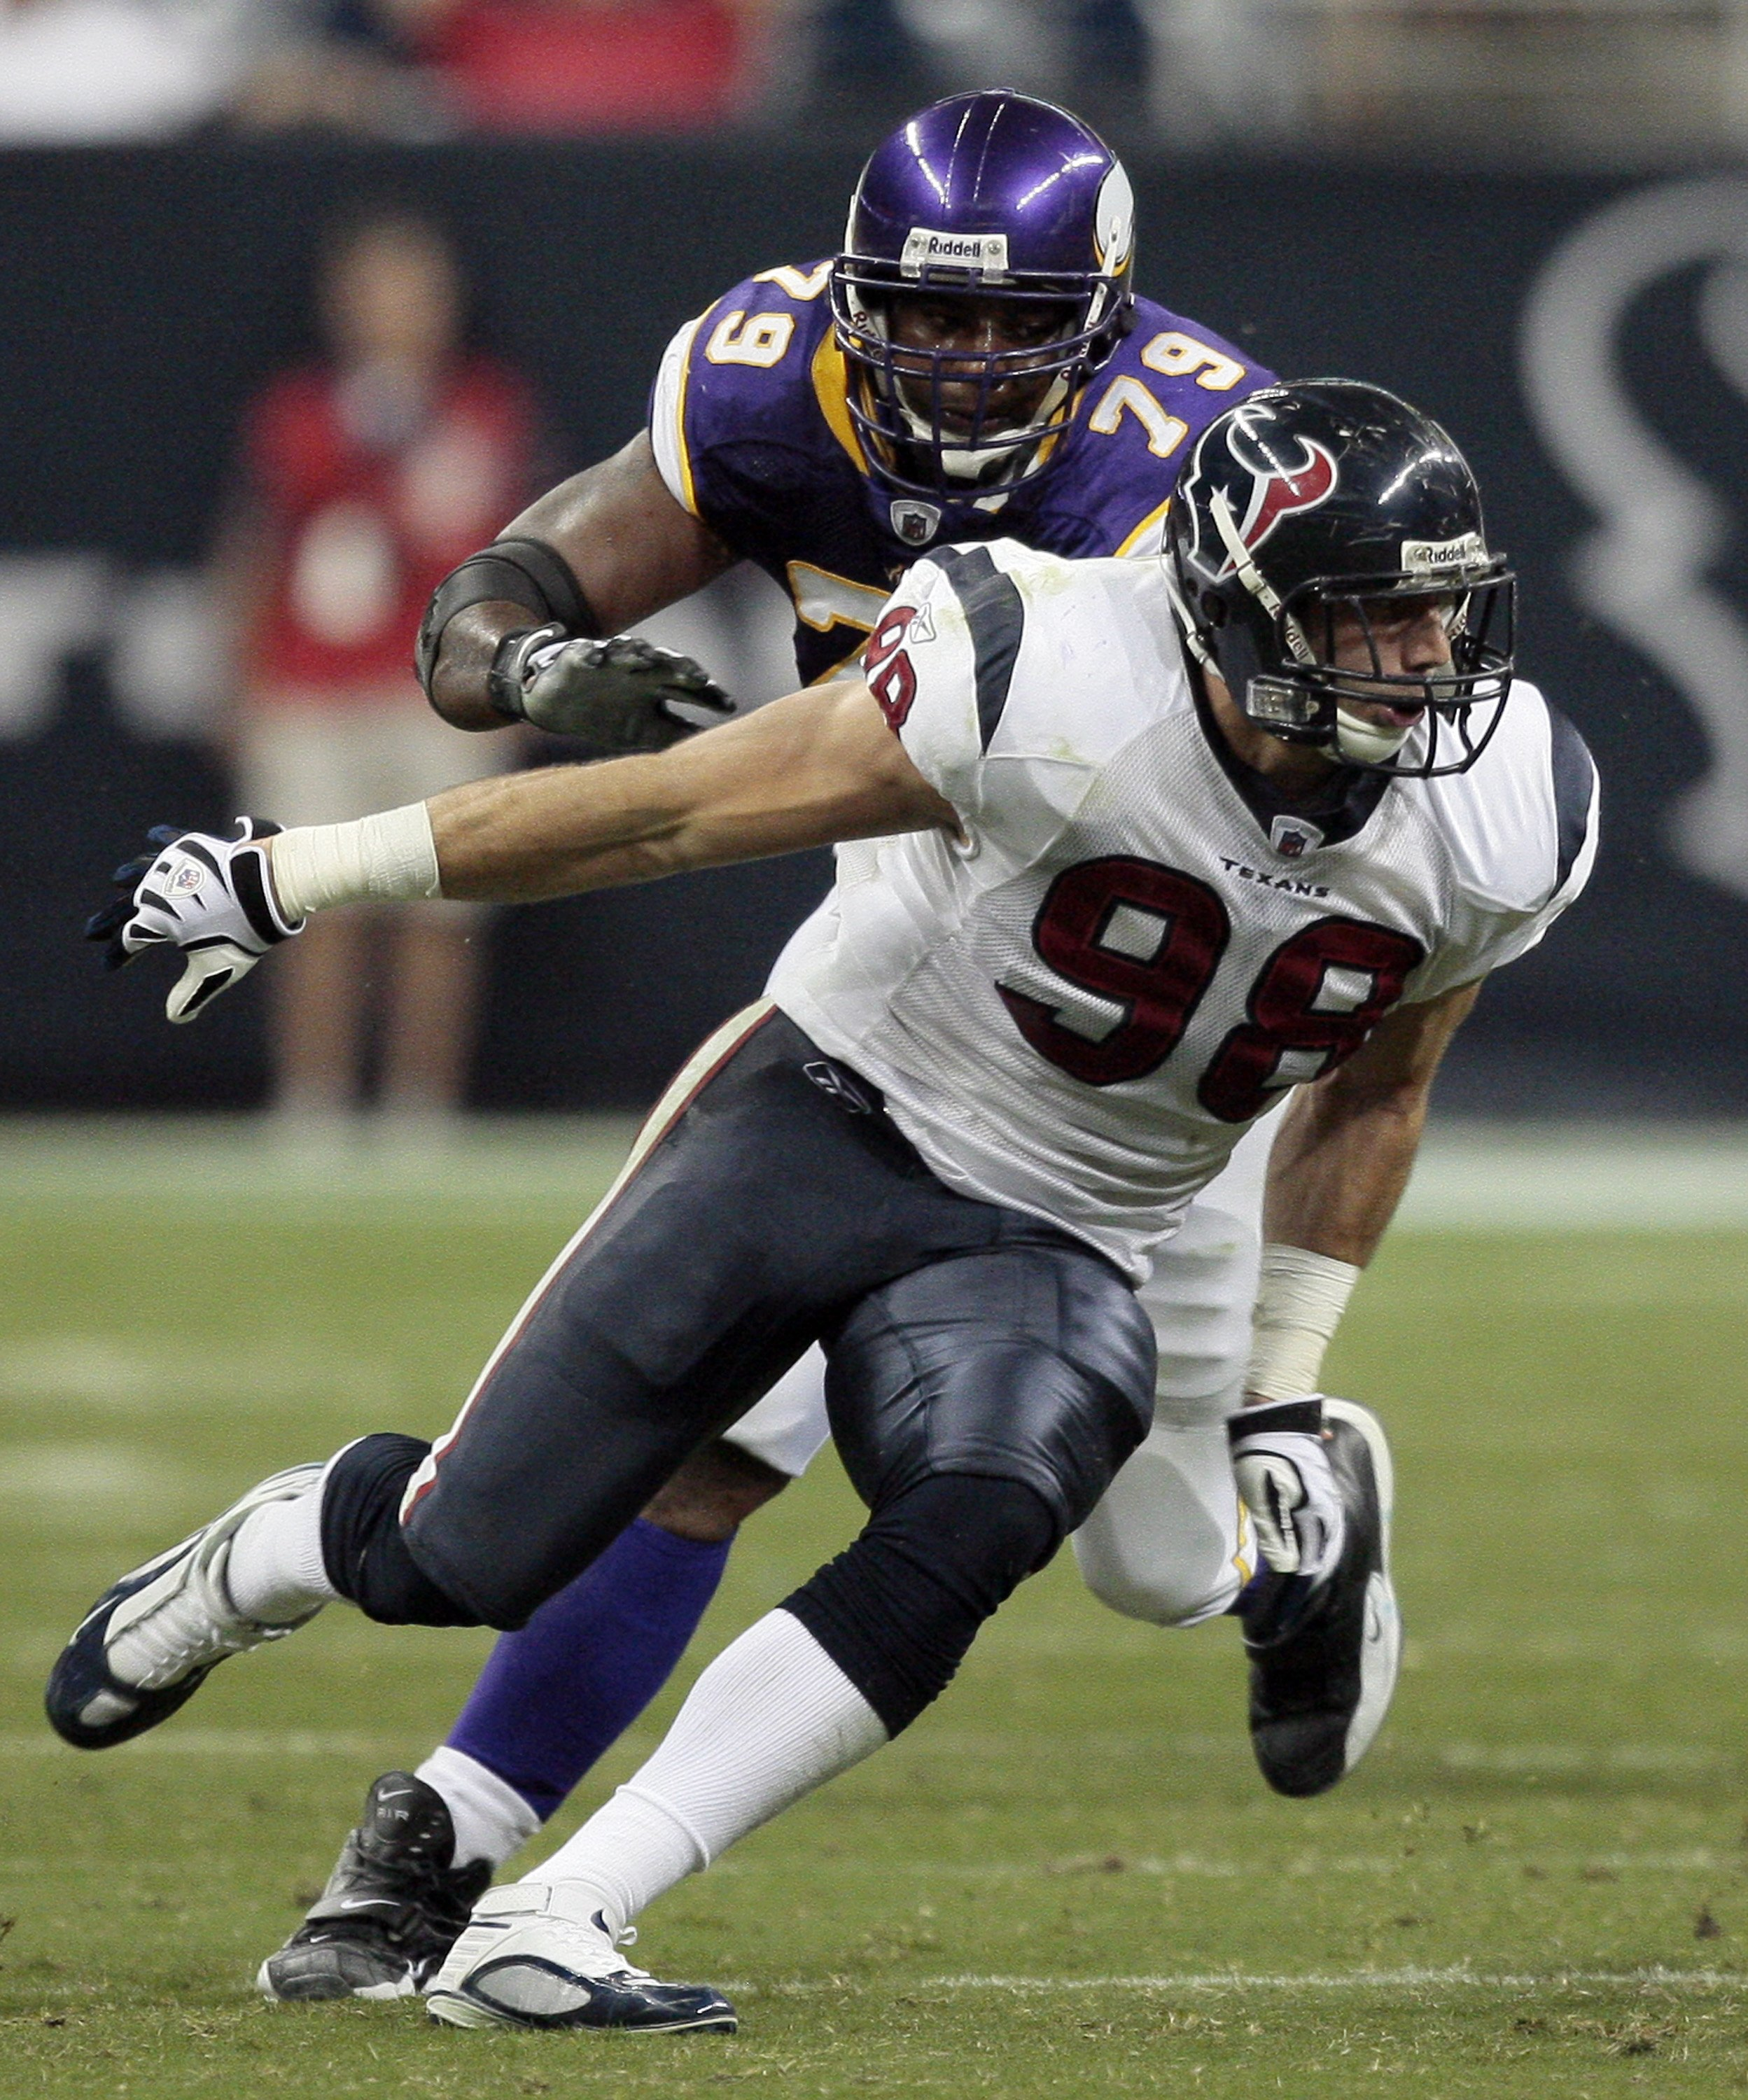 HOUSTON - AUGUST 31:  Defensive end Connor Barwin #98 of the Houston Texans goes around guard Artis Hicks #79 of the Minnesota Vikings at Reliant Stadium on August 31, 2009 in Houston, Texas.  (Photo by Bob Levey/Getty Images)